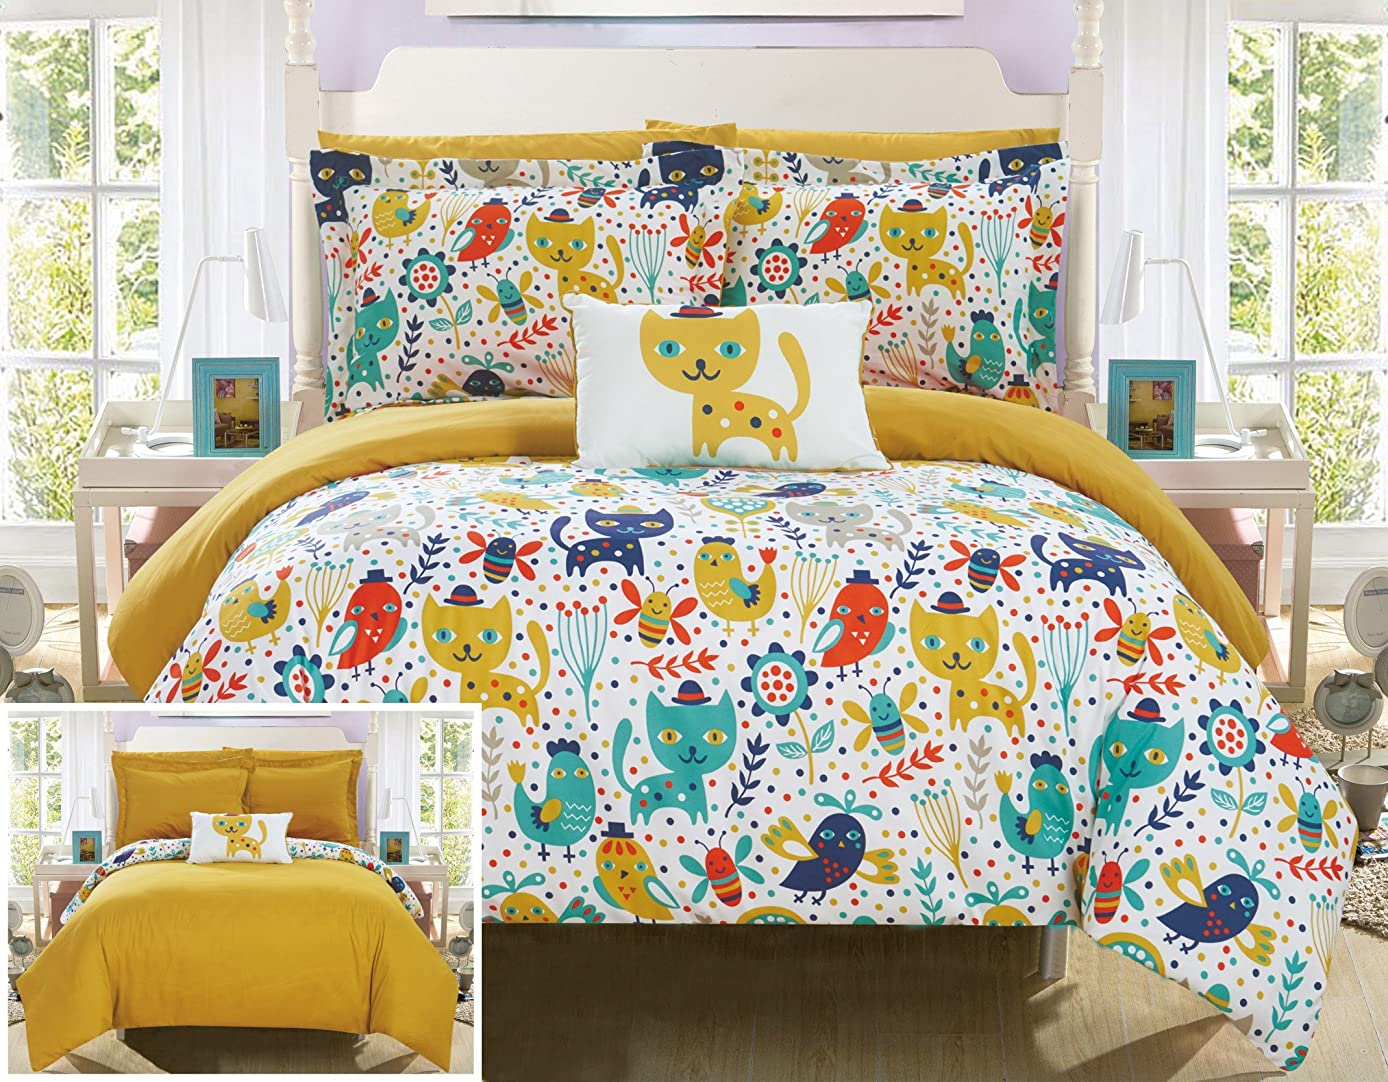 Chic Home Flopsy 6 Piece Reversible Comforter Cute Animal Friends Youth Design Bed in a Bag-Sheet Set Decorative Pillow Shams Included/XL Size, Twin, Yellow